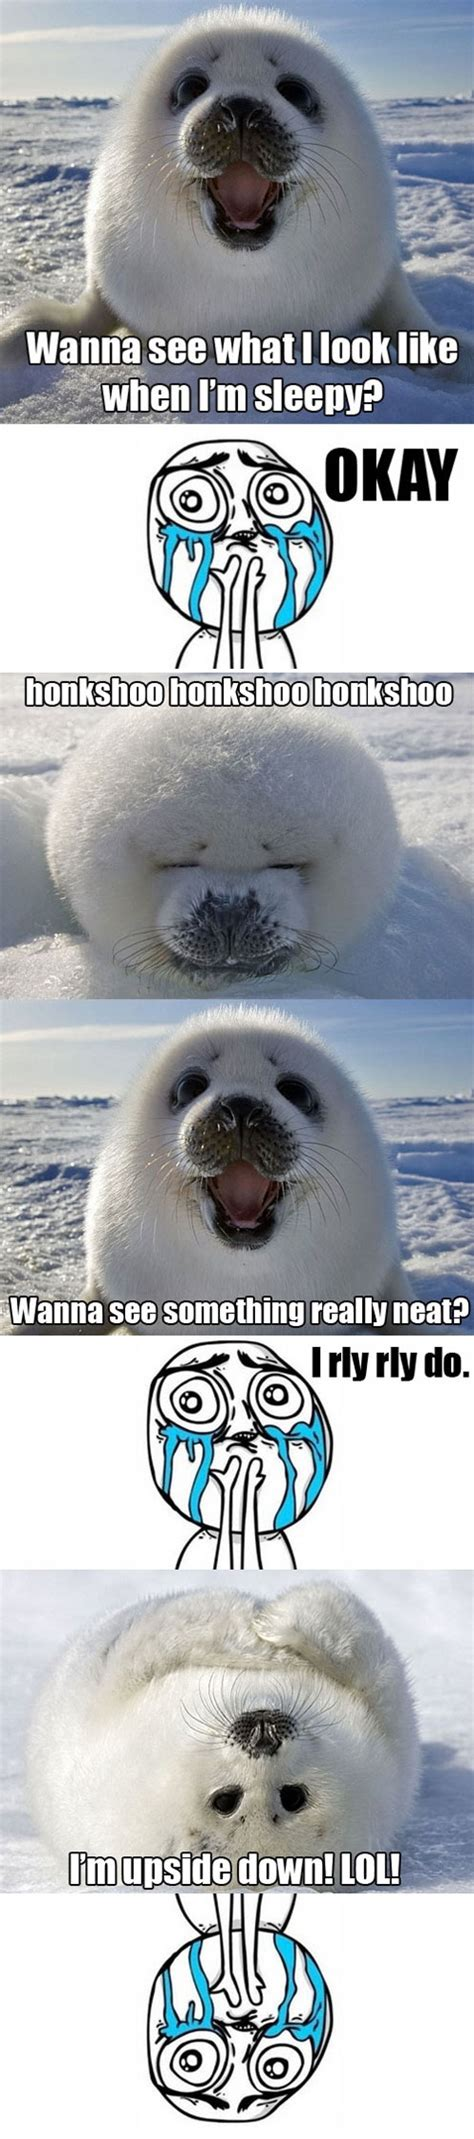 Baby Seal Meme - baby harp seal by thetoystorytailor on deviantart